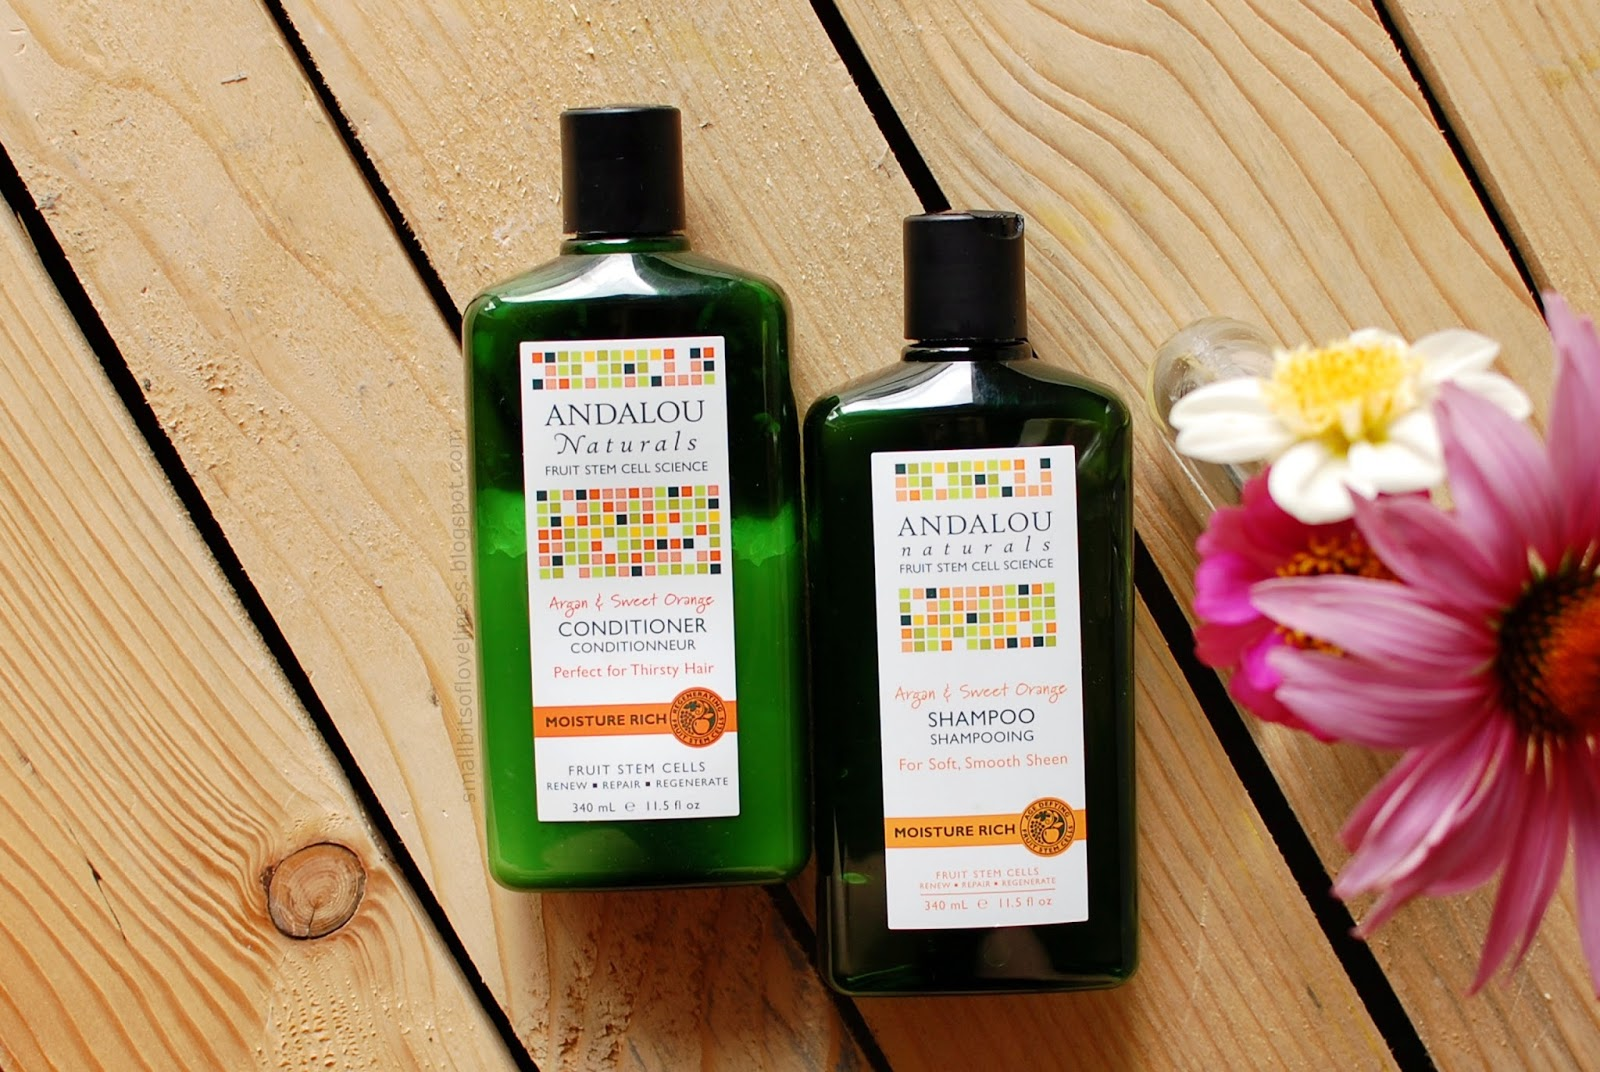 Andalou Naturals Shampoo and Conditioner Moisture Rich